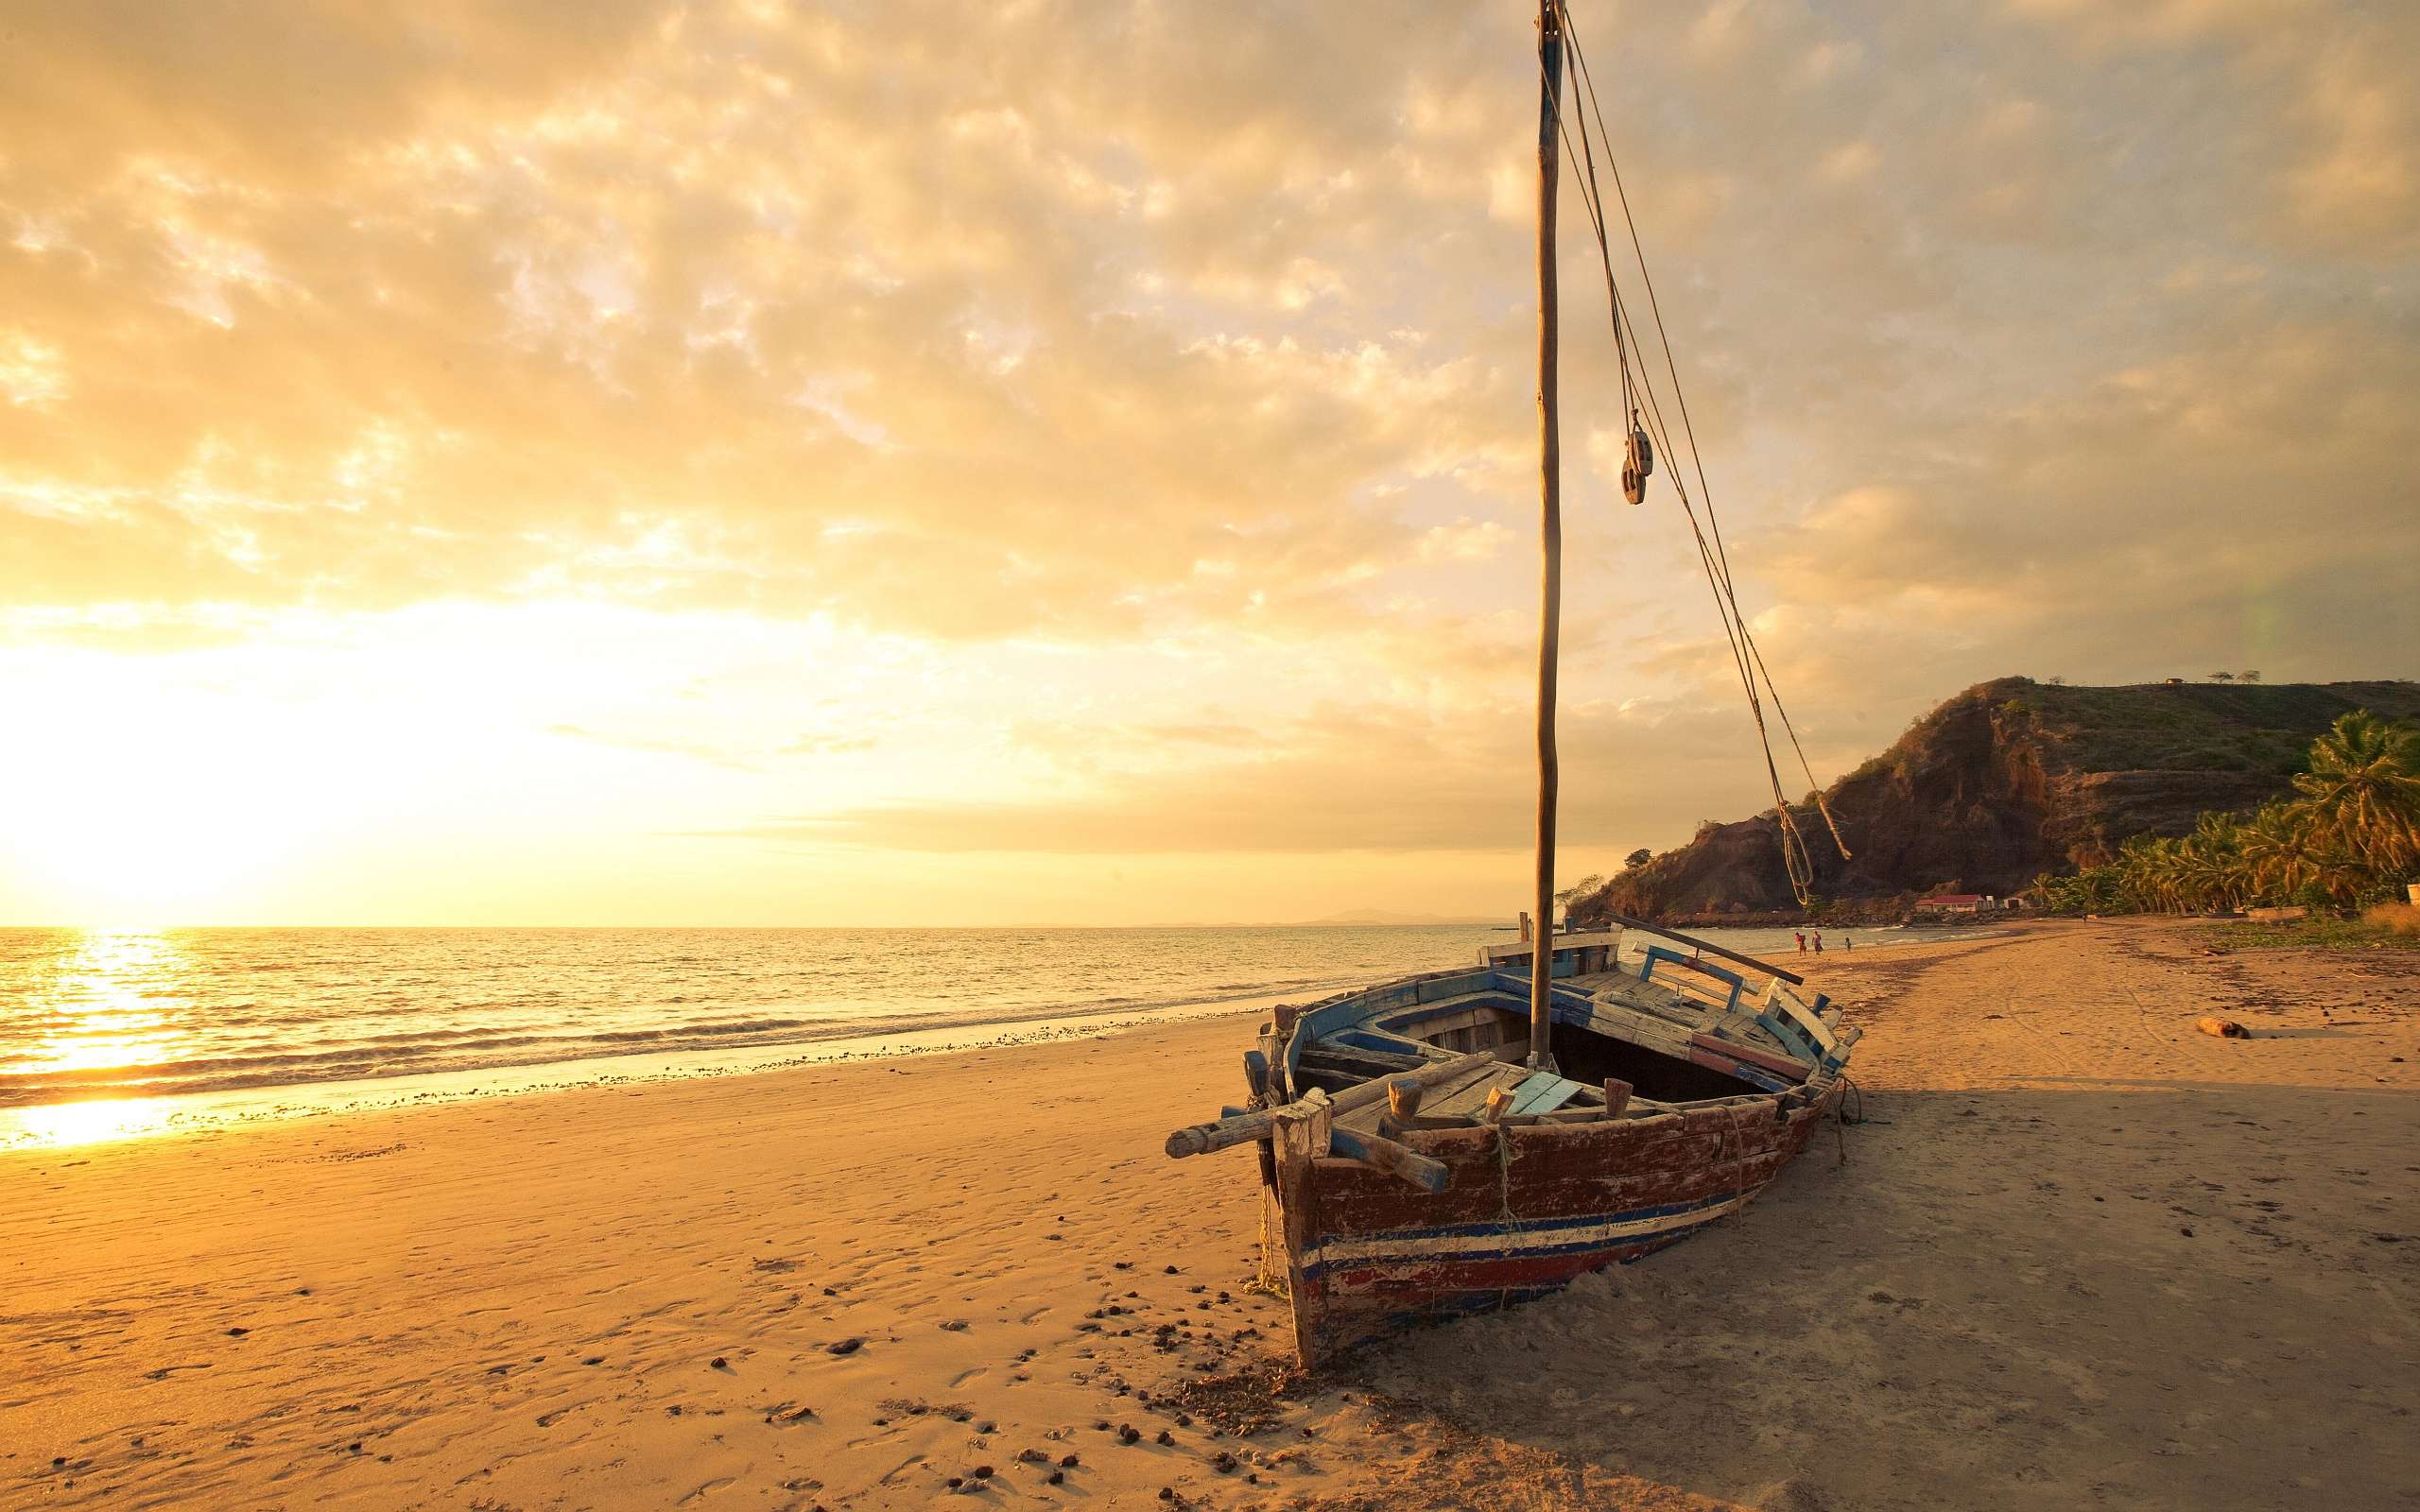 sailboat beach hd wallpapers new fresh background sail baot images high resolution